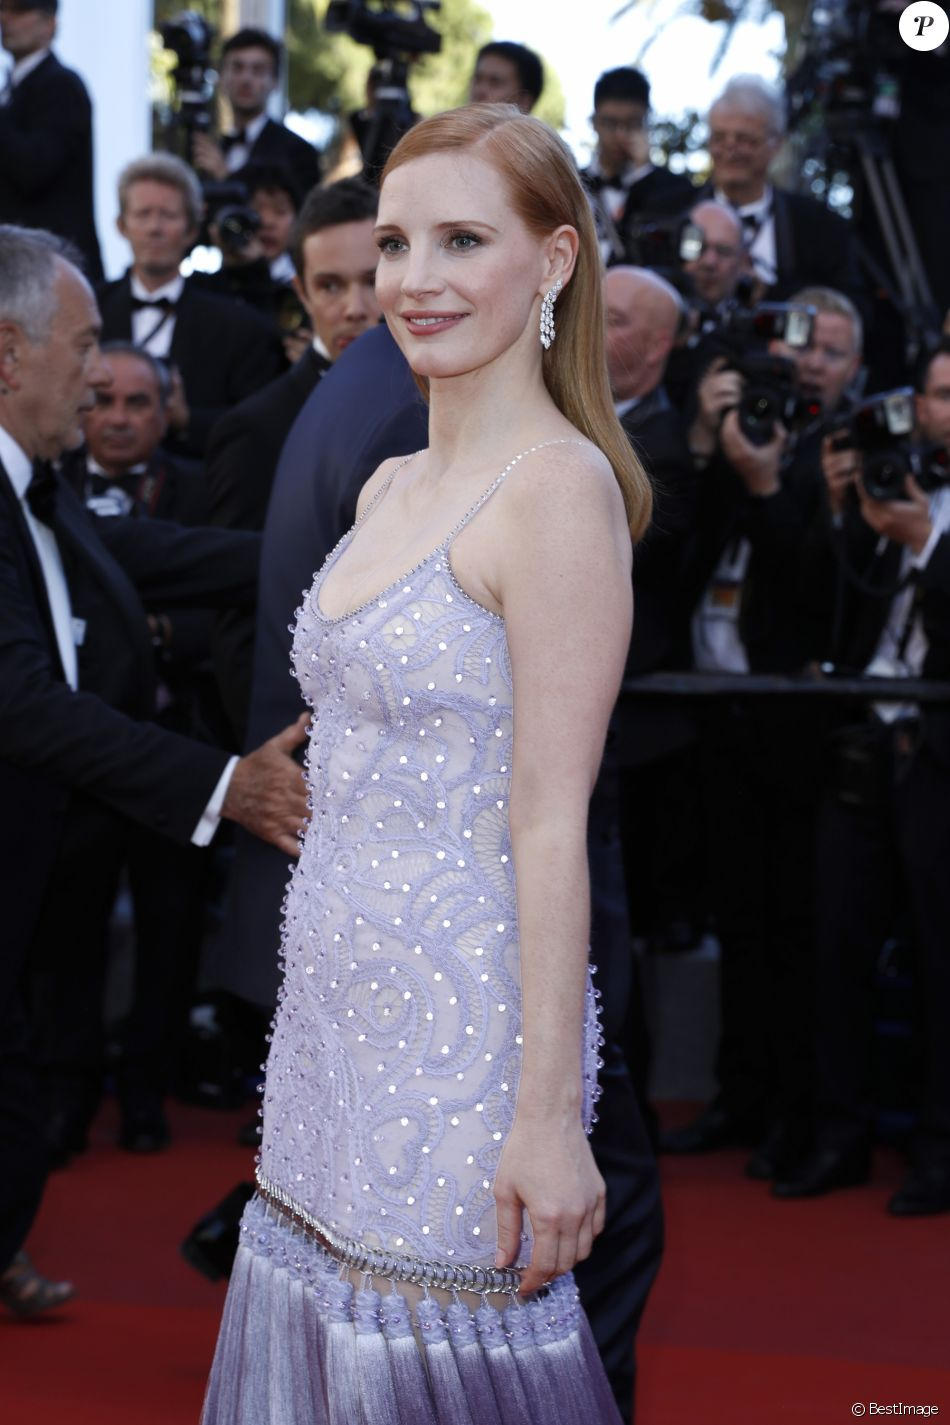 e3159248a25 ... 3278206-jessica-chastain-robe-givenchy-monte-950x0-2.